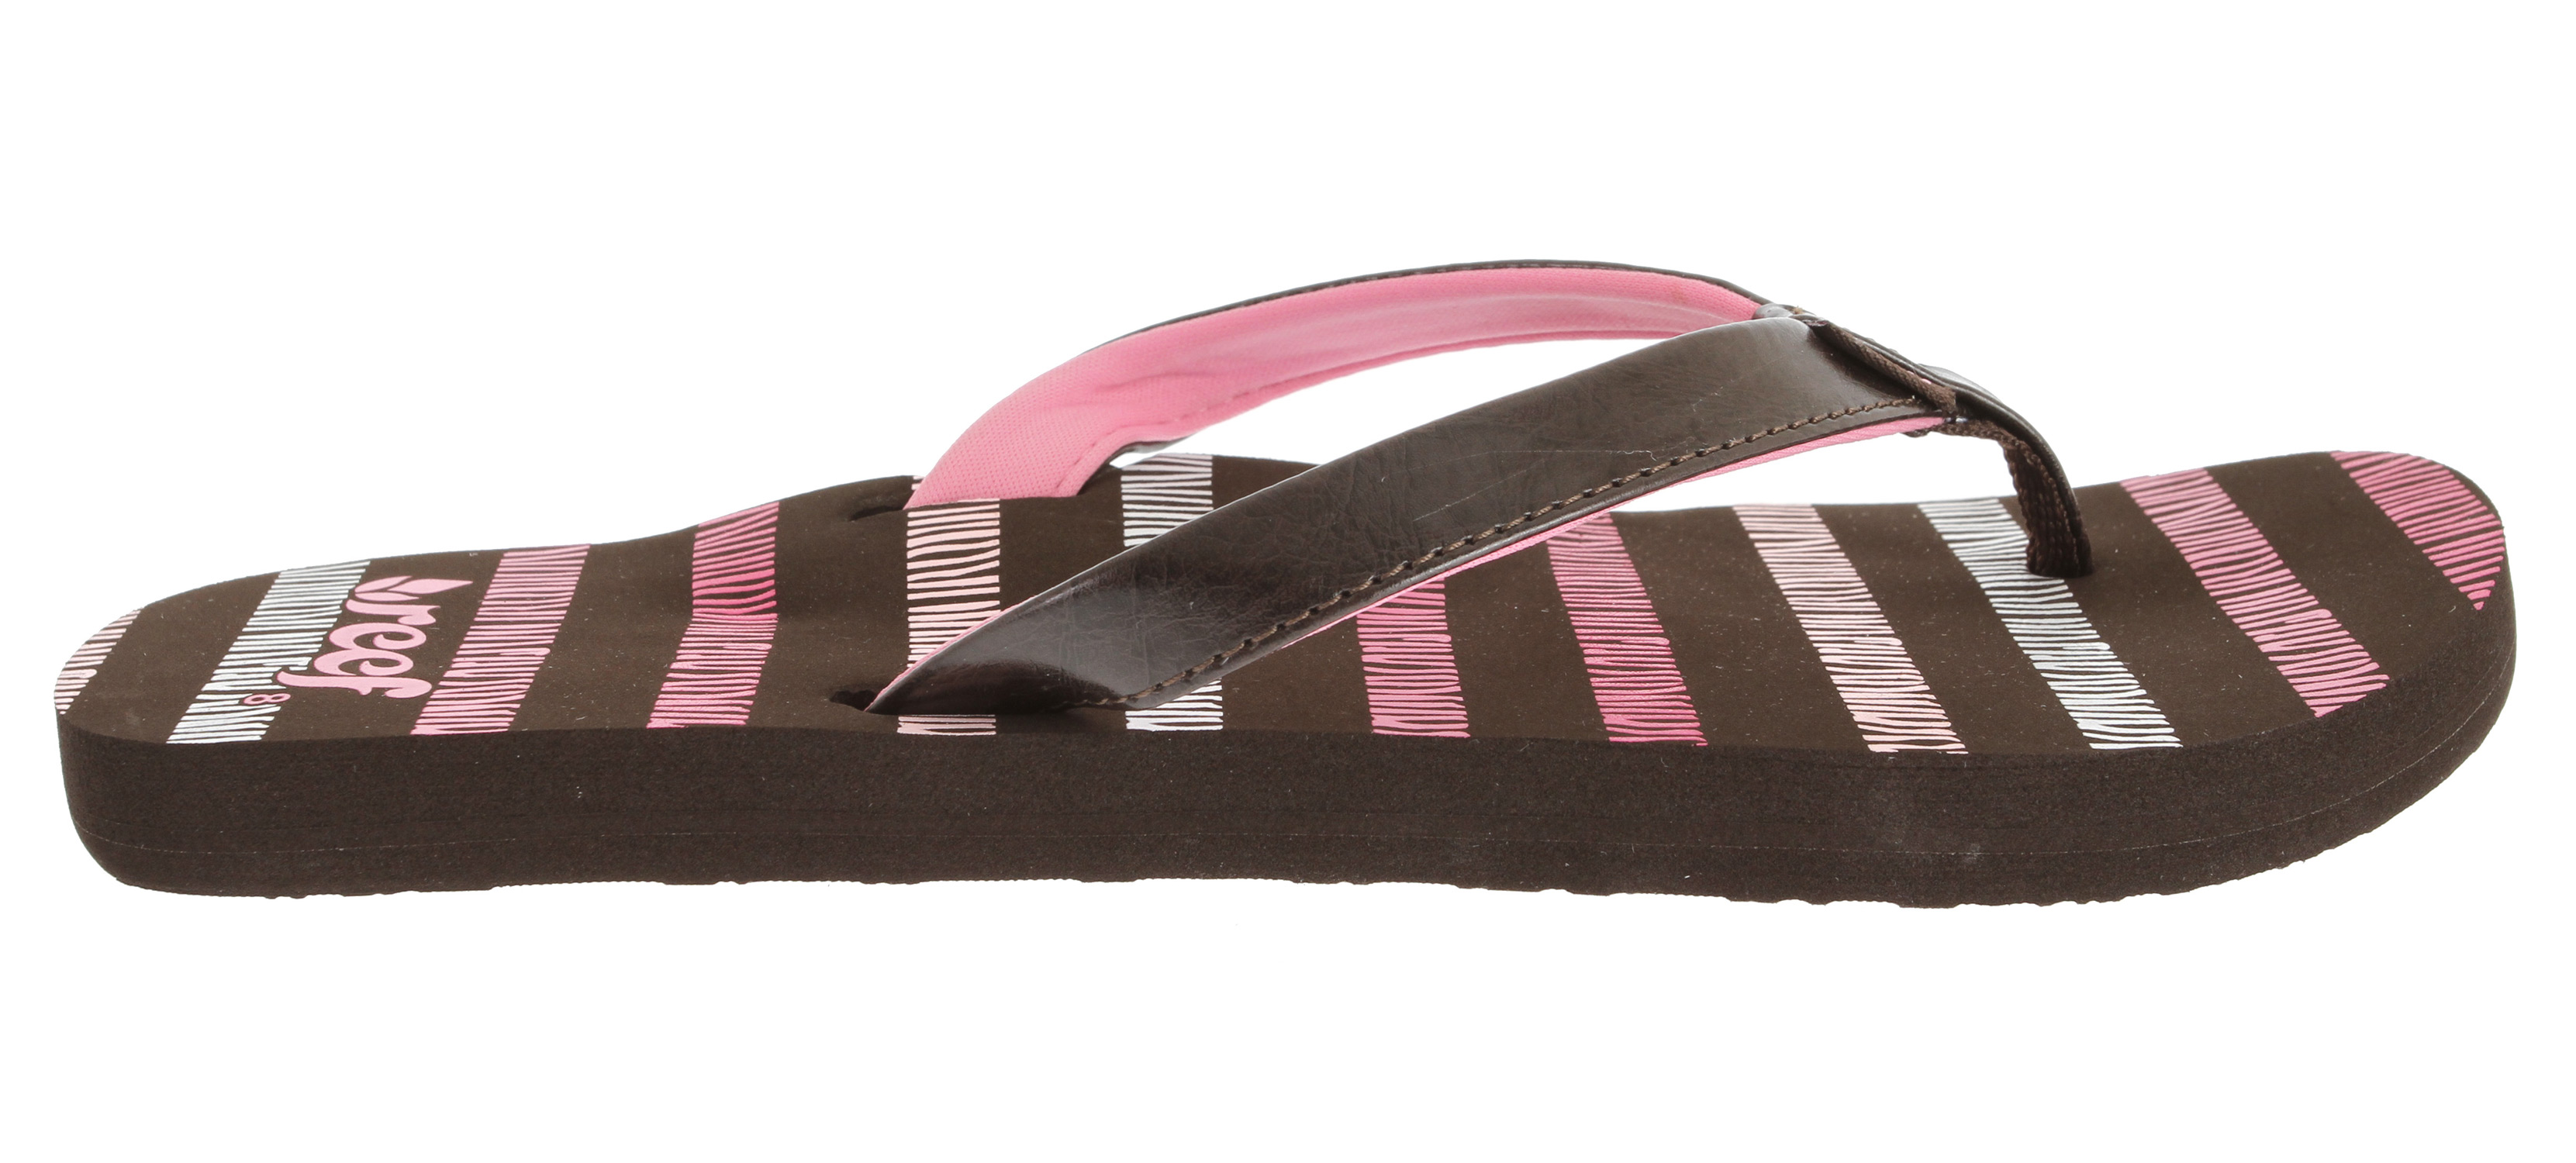 Surf Comfy, durable and versatile, this thong-style sandal from Reef is an easy-chic match for beach wear, denims, and other summery favorites. The Lakeside 2 is crafted with a synthetic leather upper and features a soft, fabric lining and contoured footbed for arch support. It's perfect for tucking into your weekend travel tote as a lightweight accompaniment to your casual evening wear. - $18.95